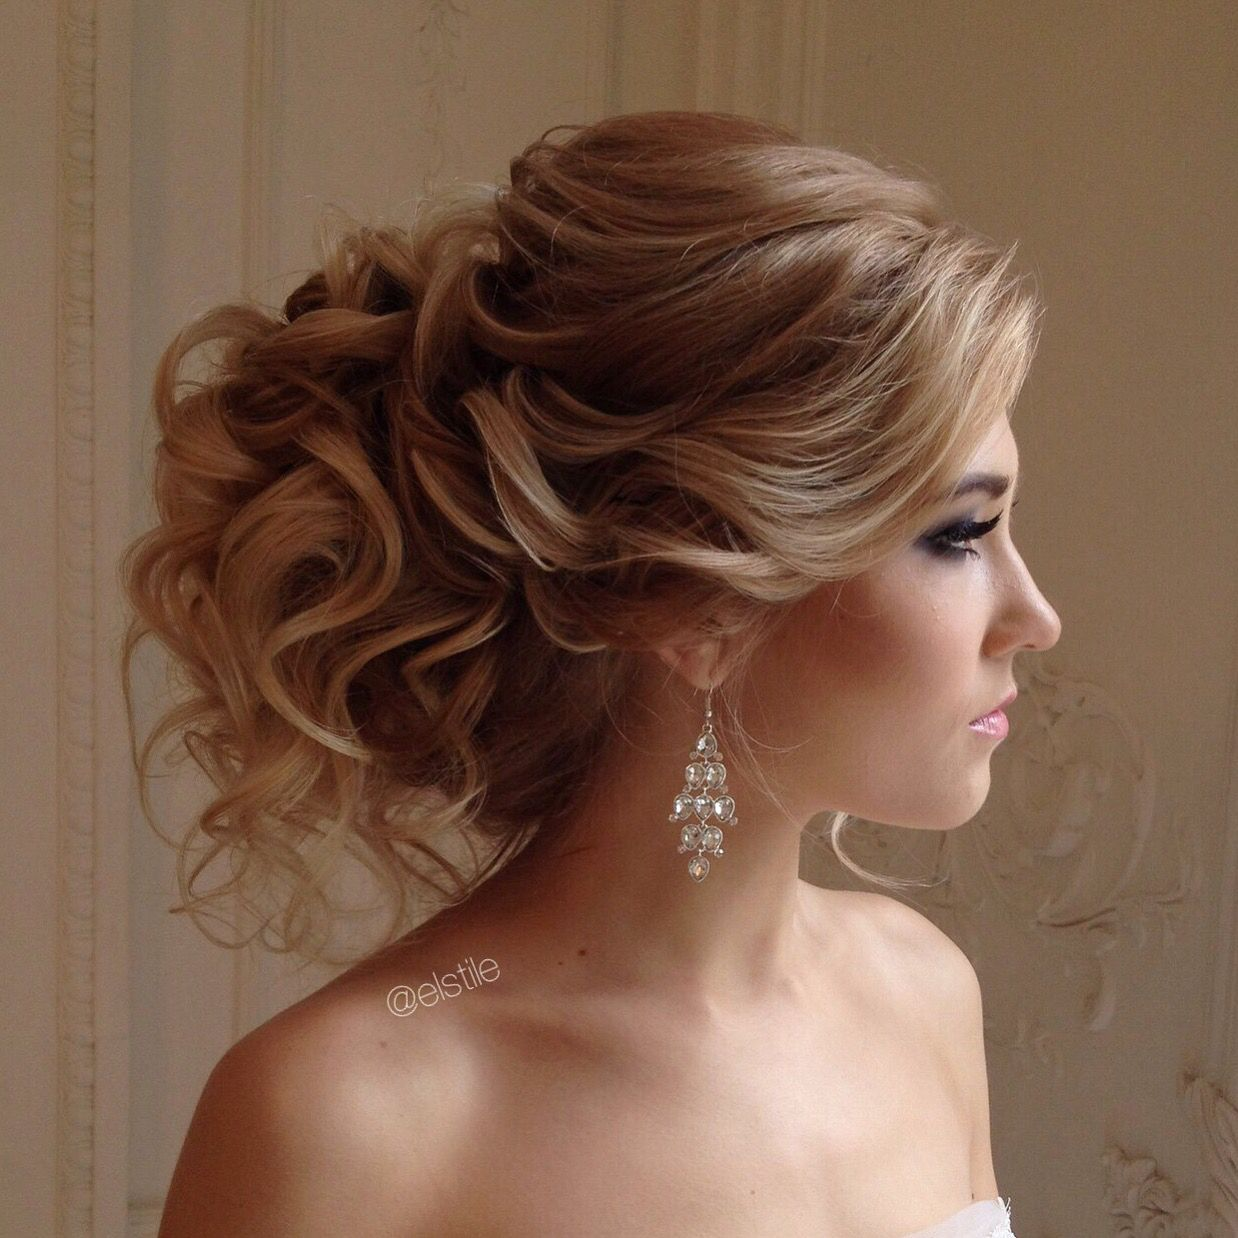 up hairstyles lovely bridal look make up hairstyles web www elstile ru